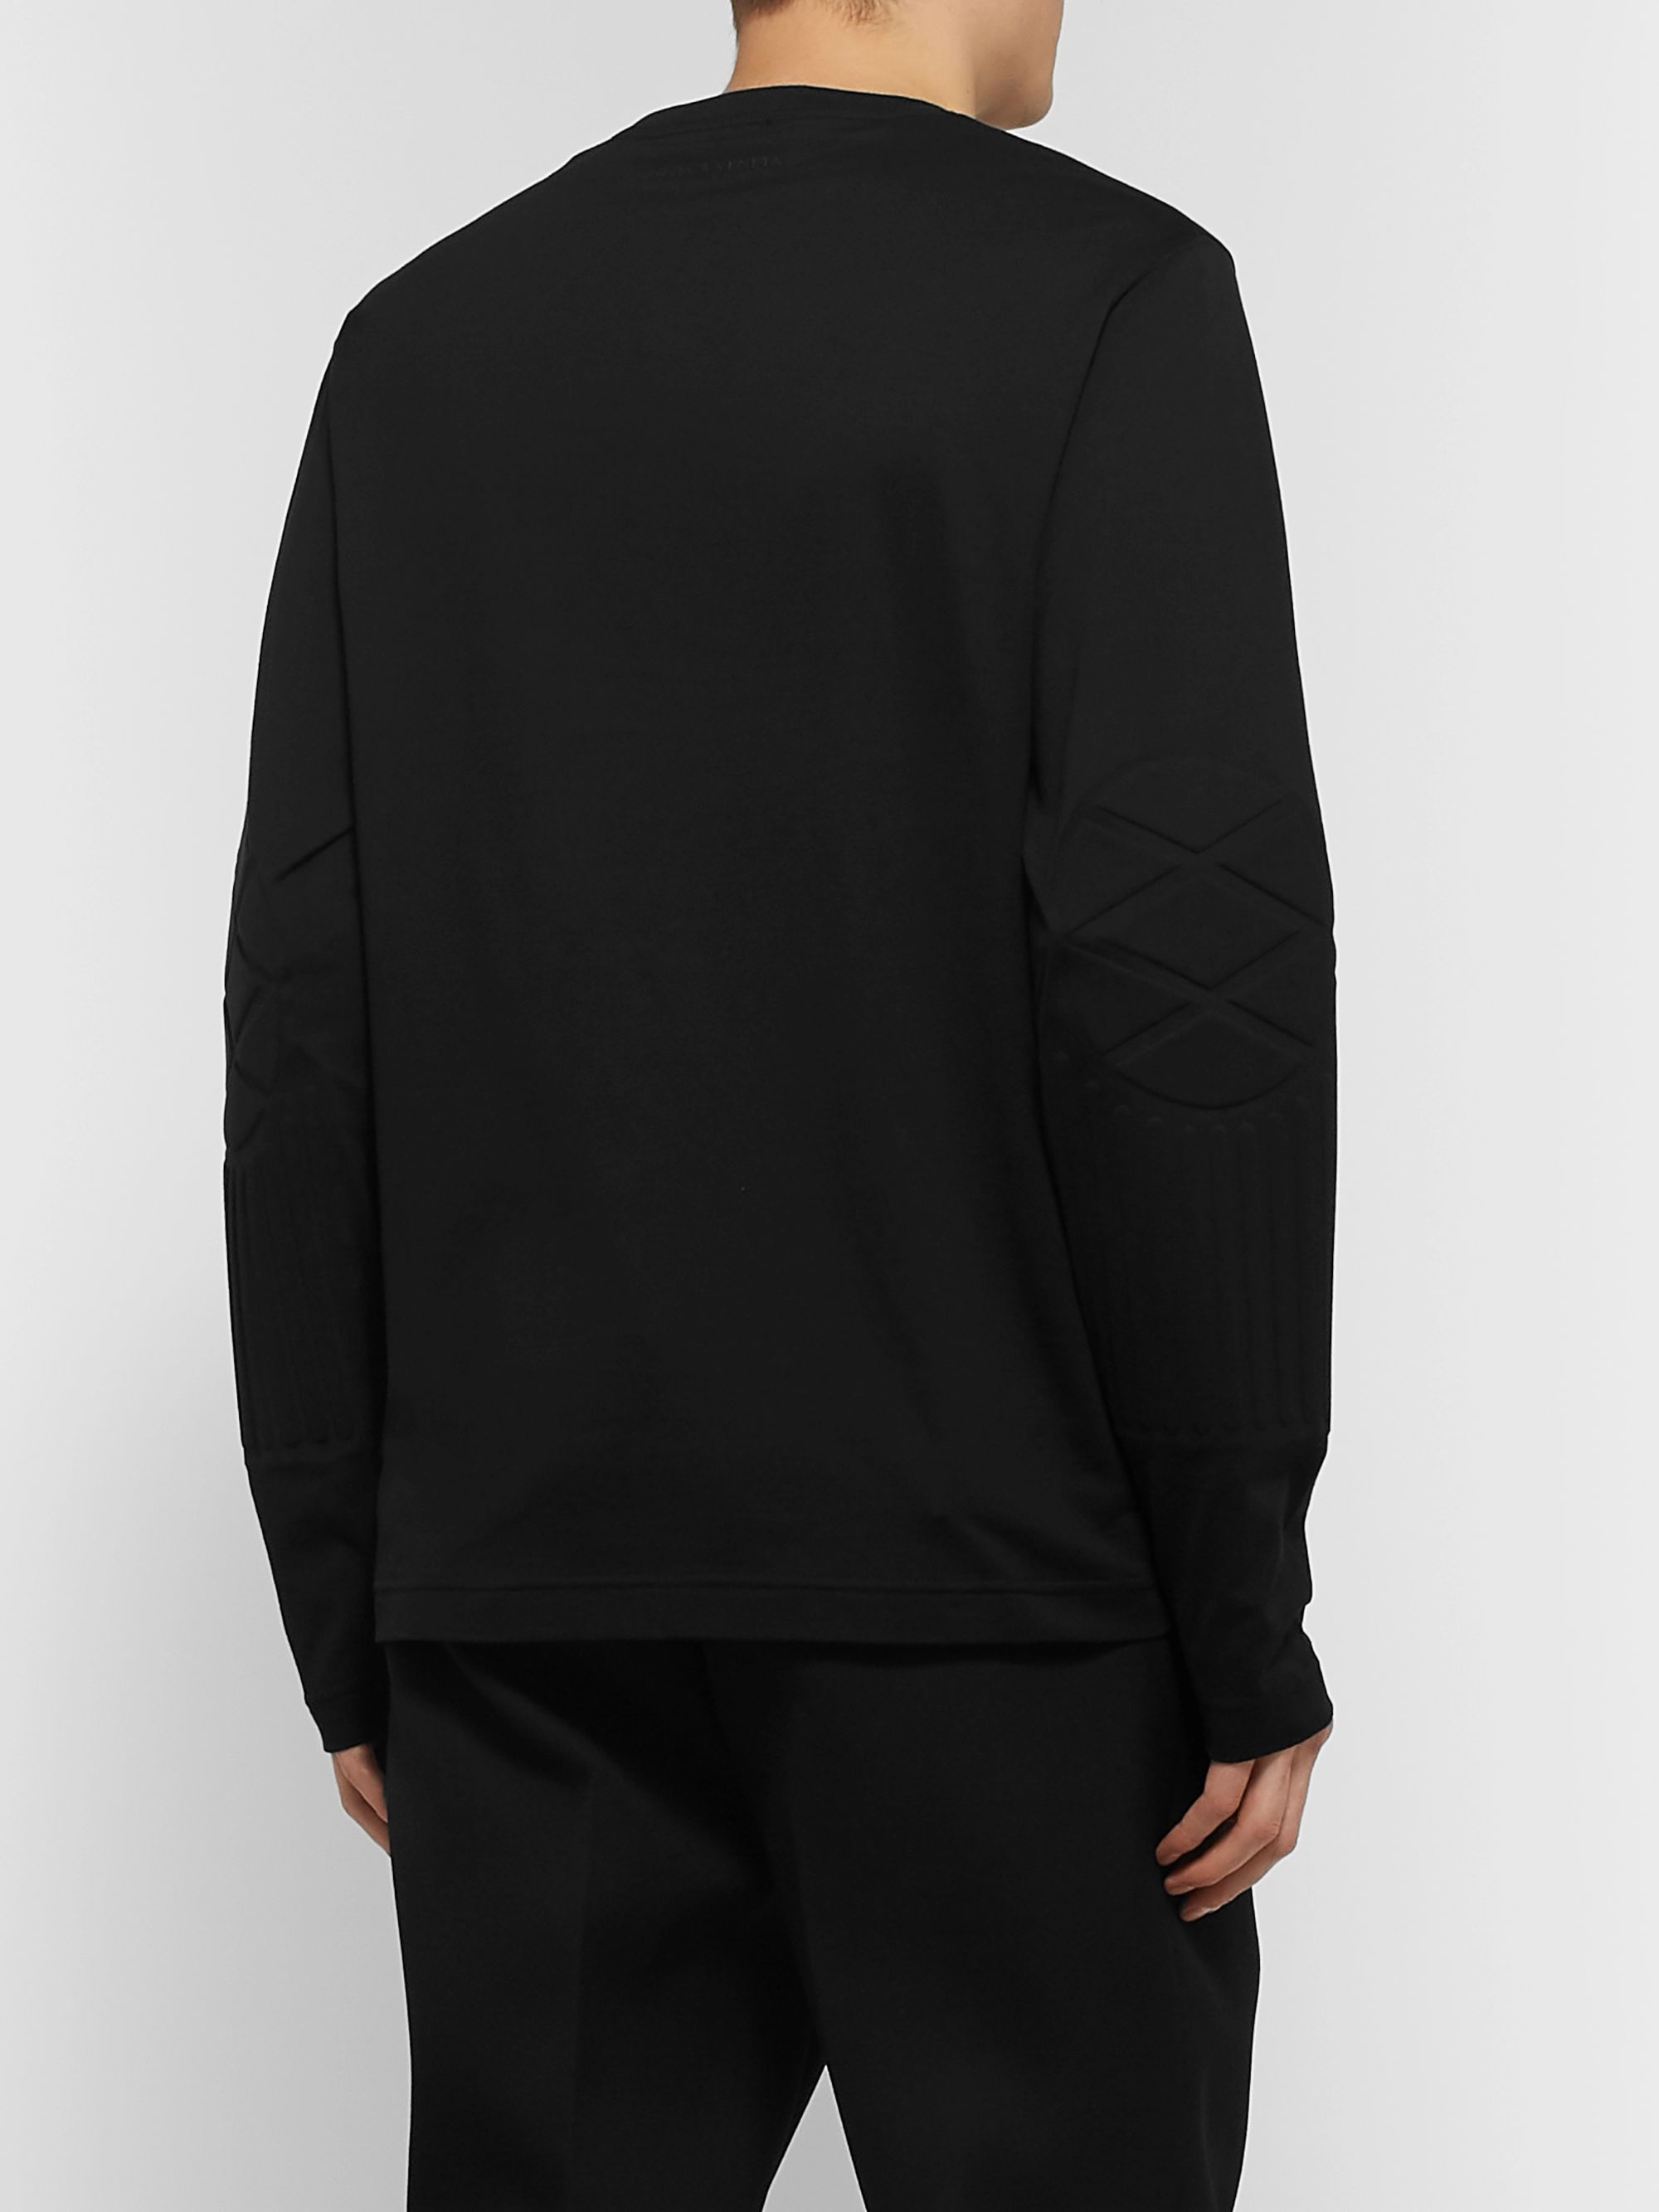 Bottega Veneta Panelled Cotton-Jersey T-Shirt